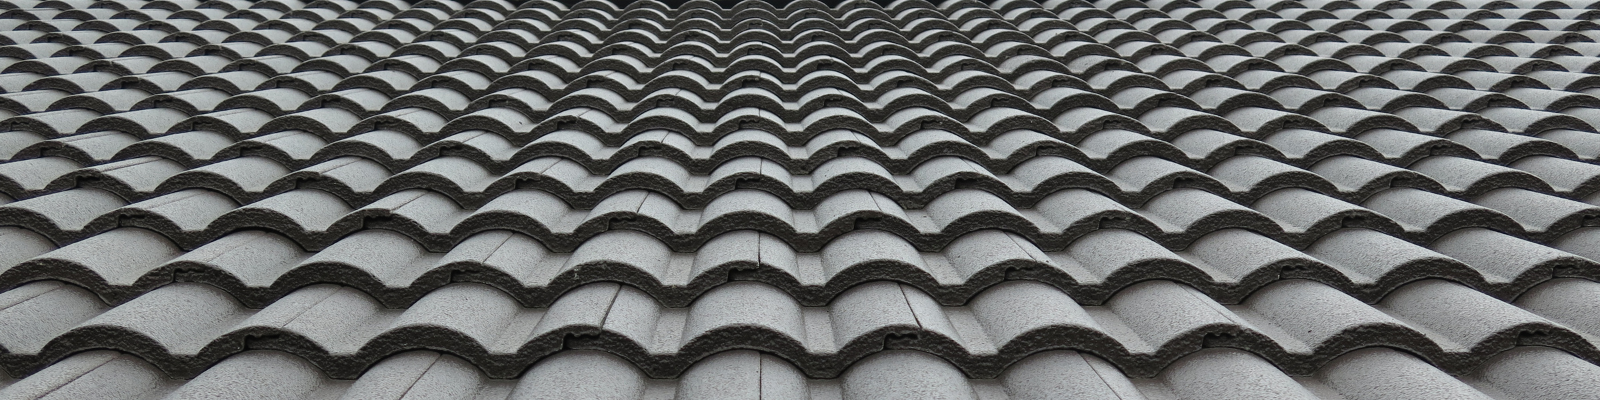 Close up image of a roof